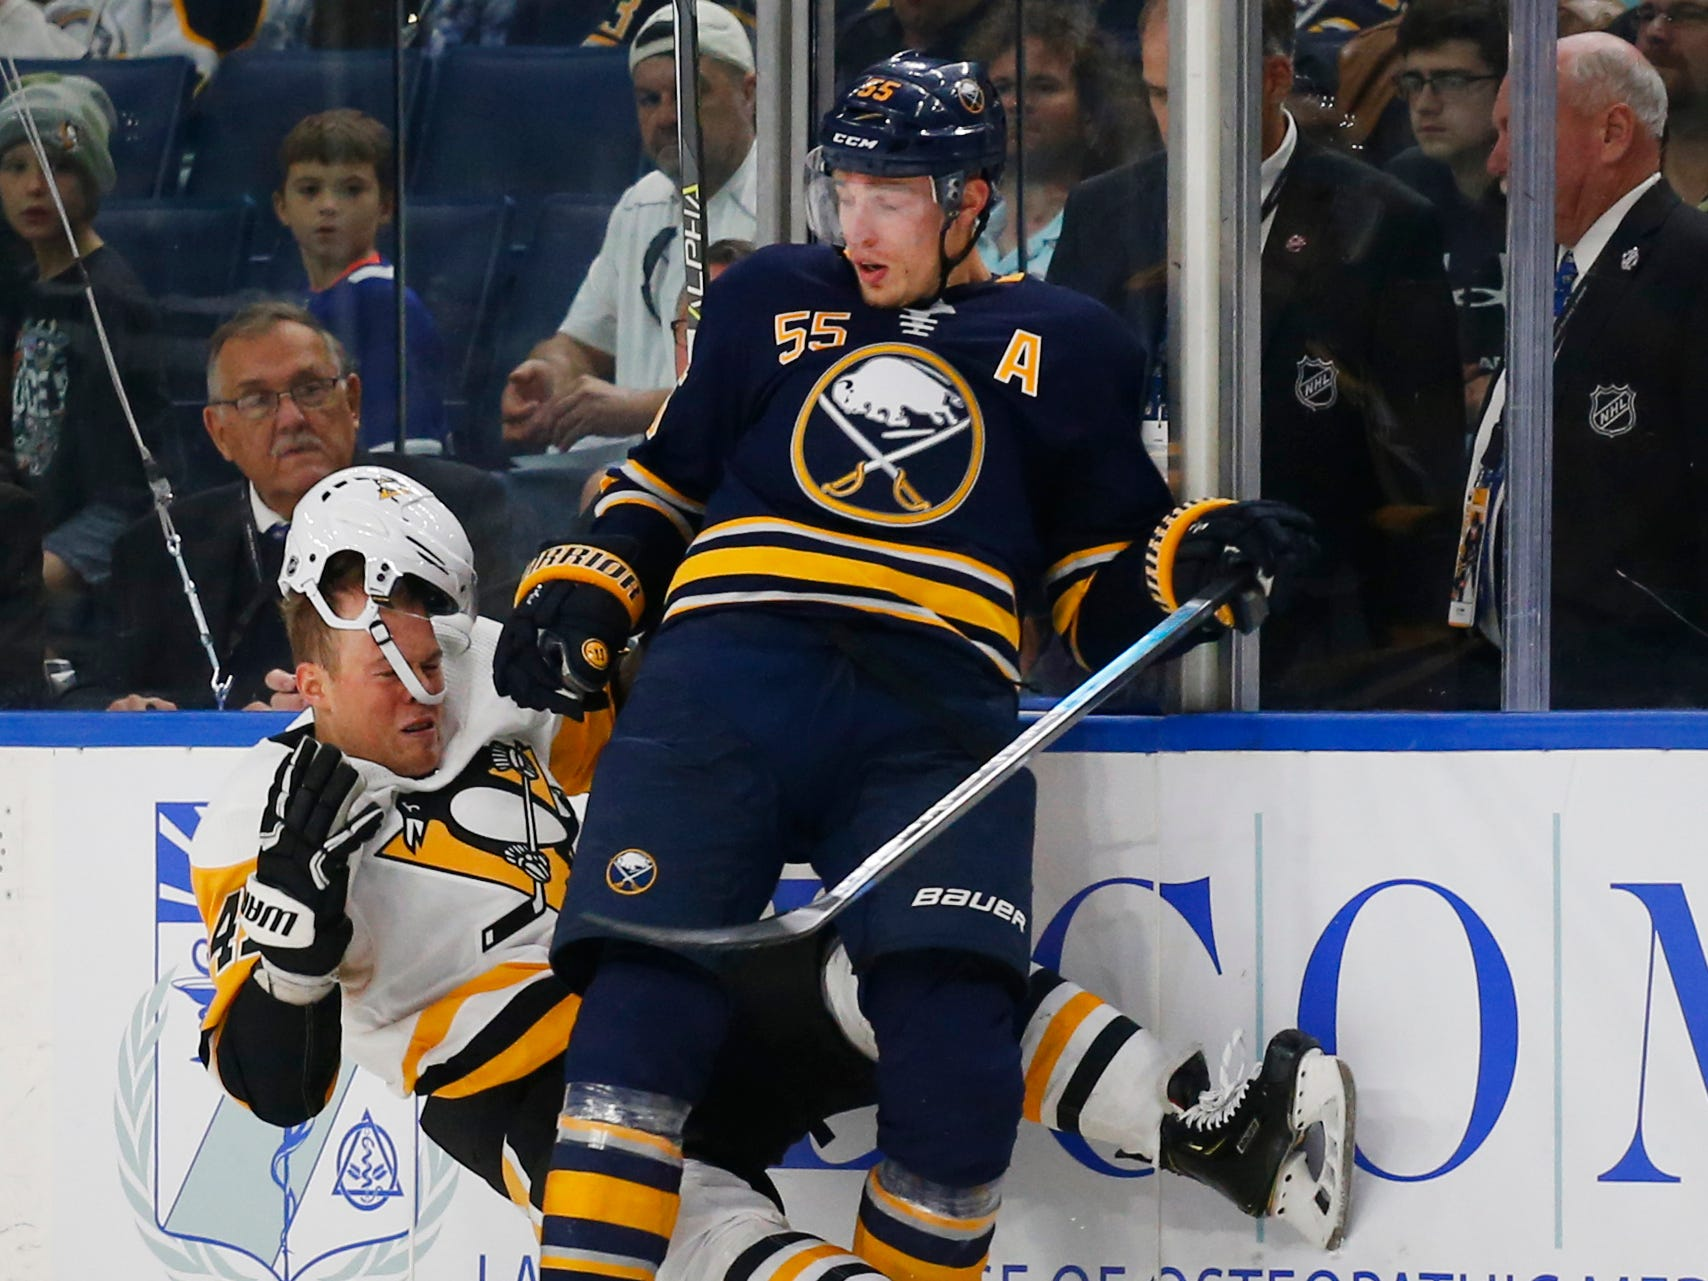 Sept. 18: Buffalo Sabres defenseman Rasmus Ristolainen sends Pittsburgh Penguins forward Daniel Sprong's helmet flying with a first-period check.